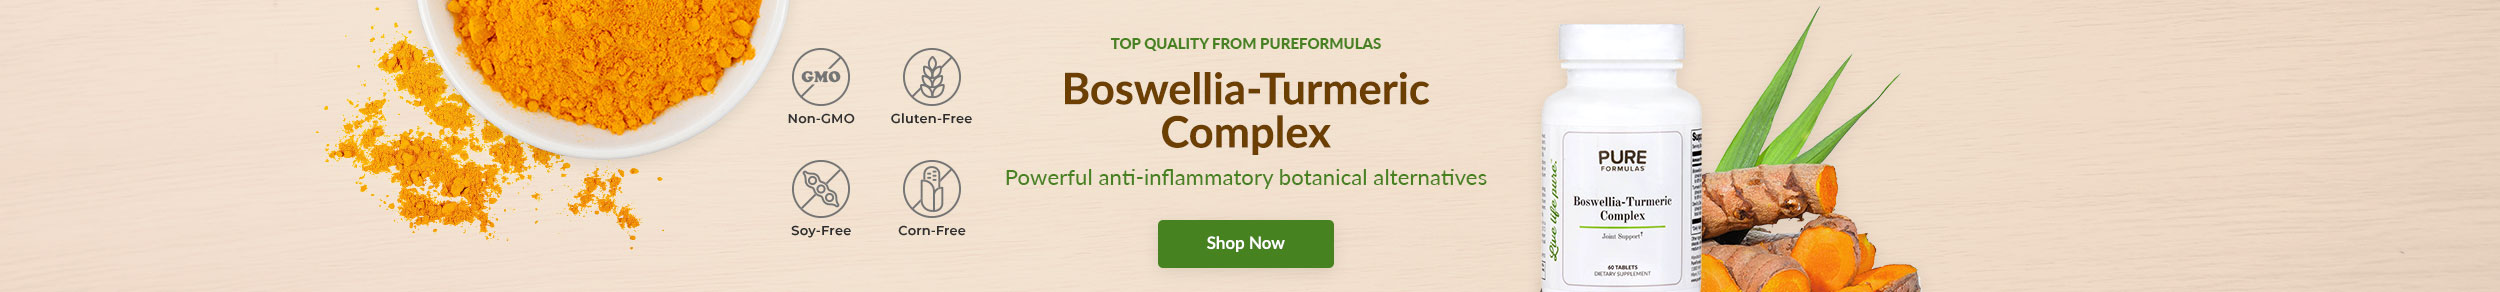 Top Quality from PureFormulas: Boswellia-Turmeric Complex - Powerful anti-inflammatory botanical alternatives